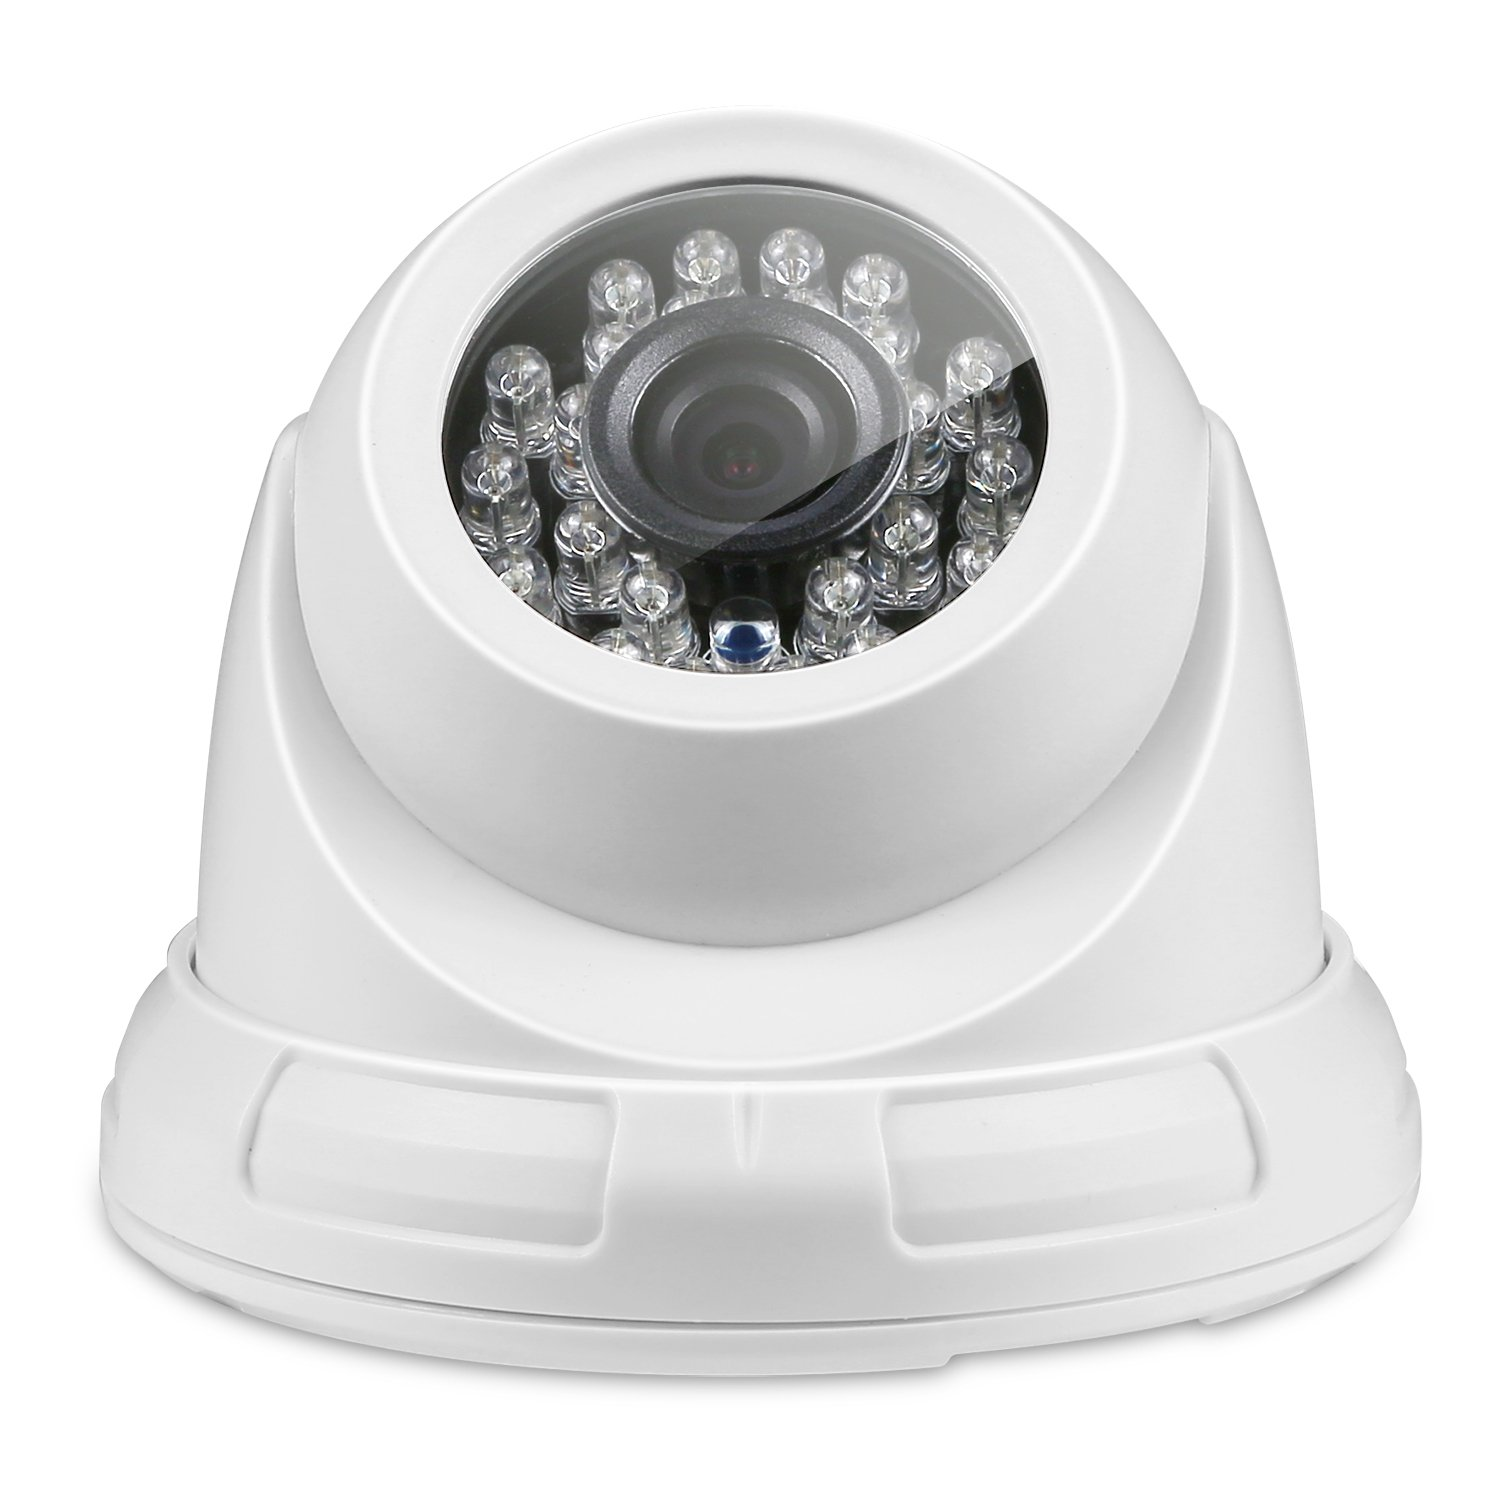 ANNKE TVI HD 720P Security In/Outdoor CCTV Dome Camera with Weatherproof Housing, 66ft Super Night Vision